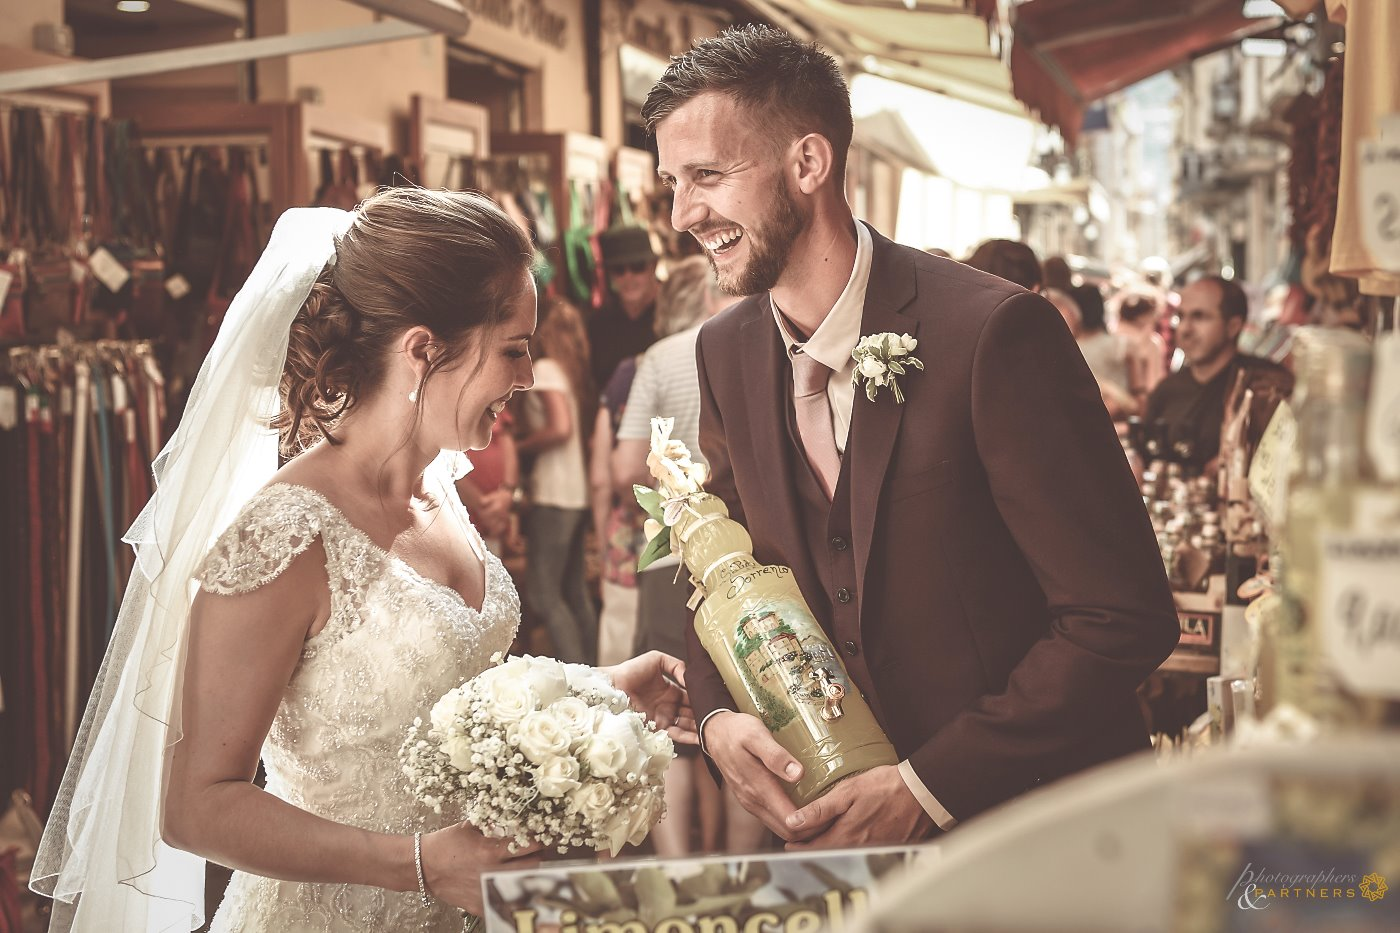 photography_weddings_sorrento_17.jpg